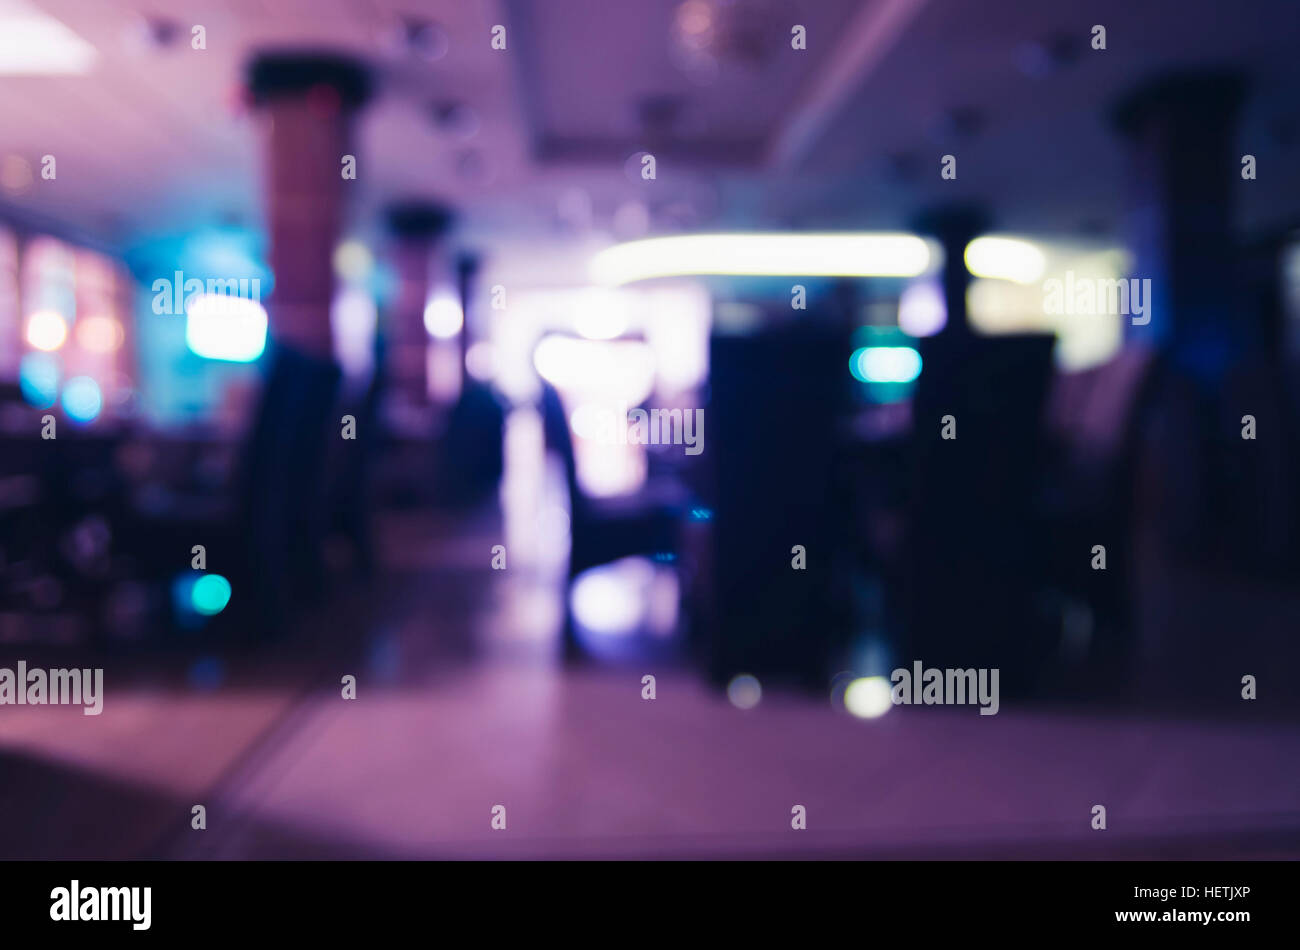 Unfocused image of empty restaurant interior with colorful lighting. - Stock Image